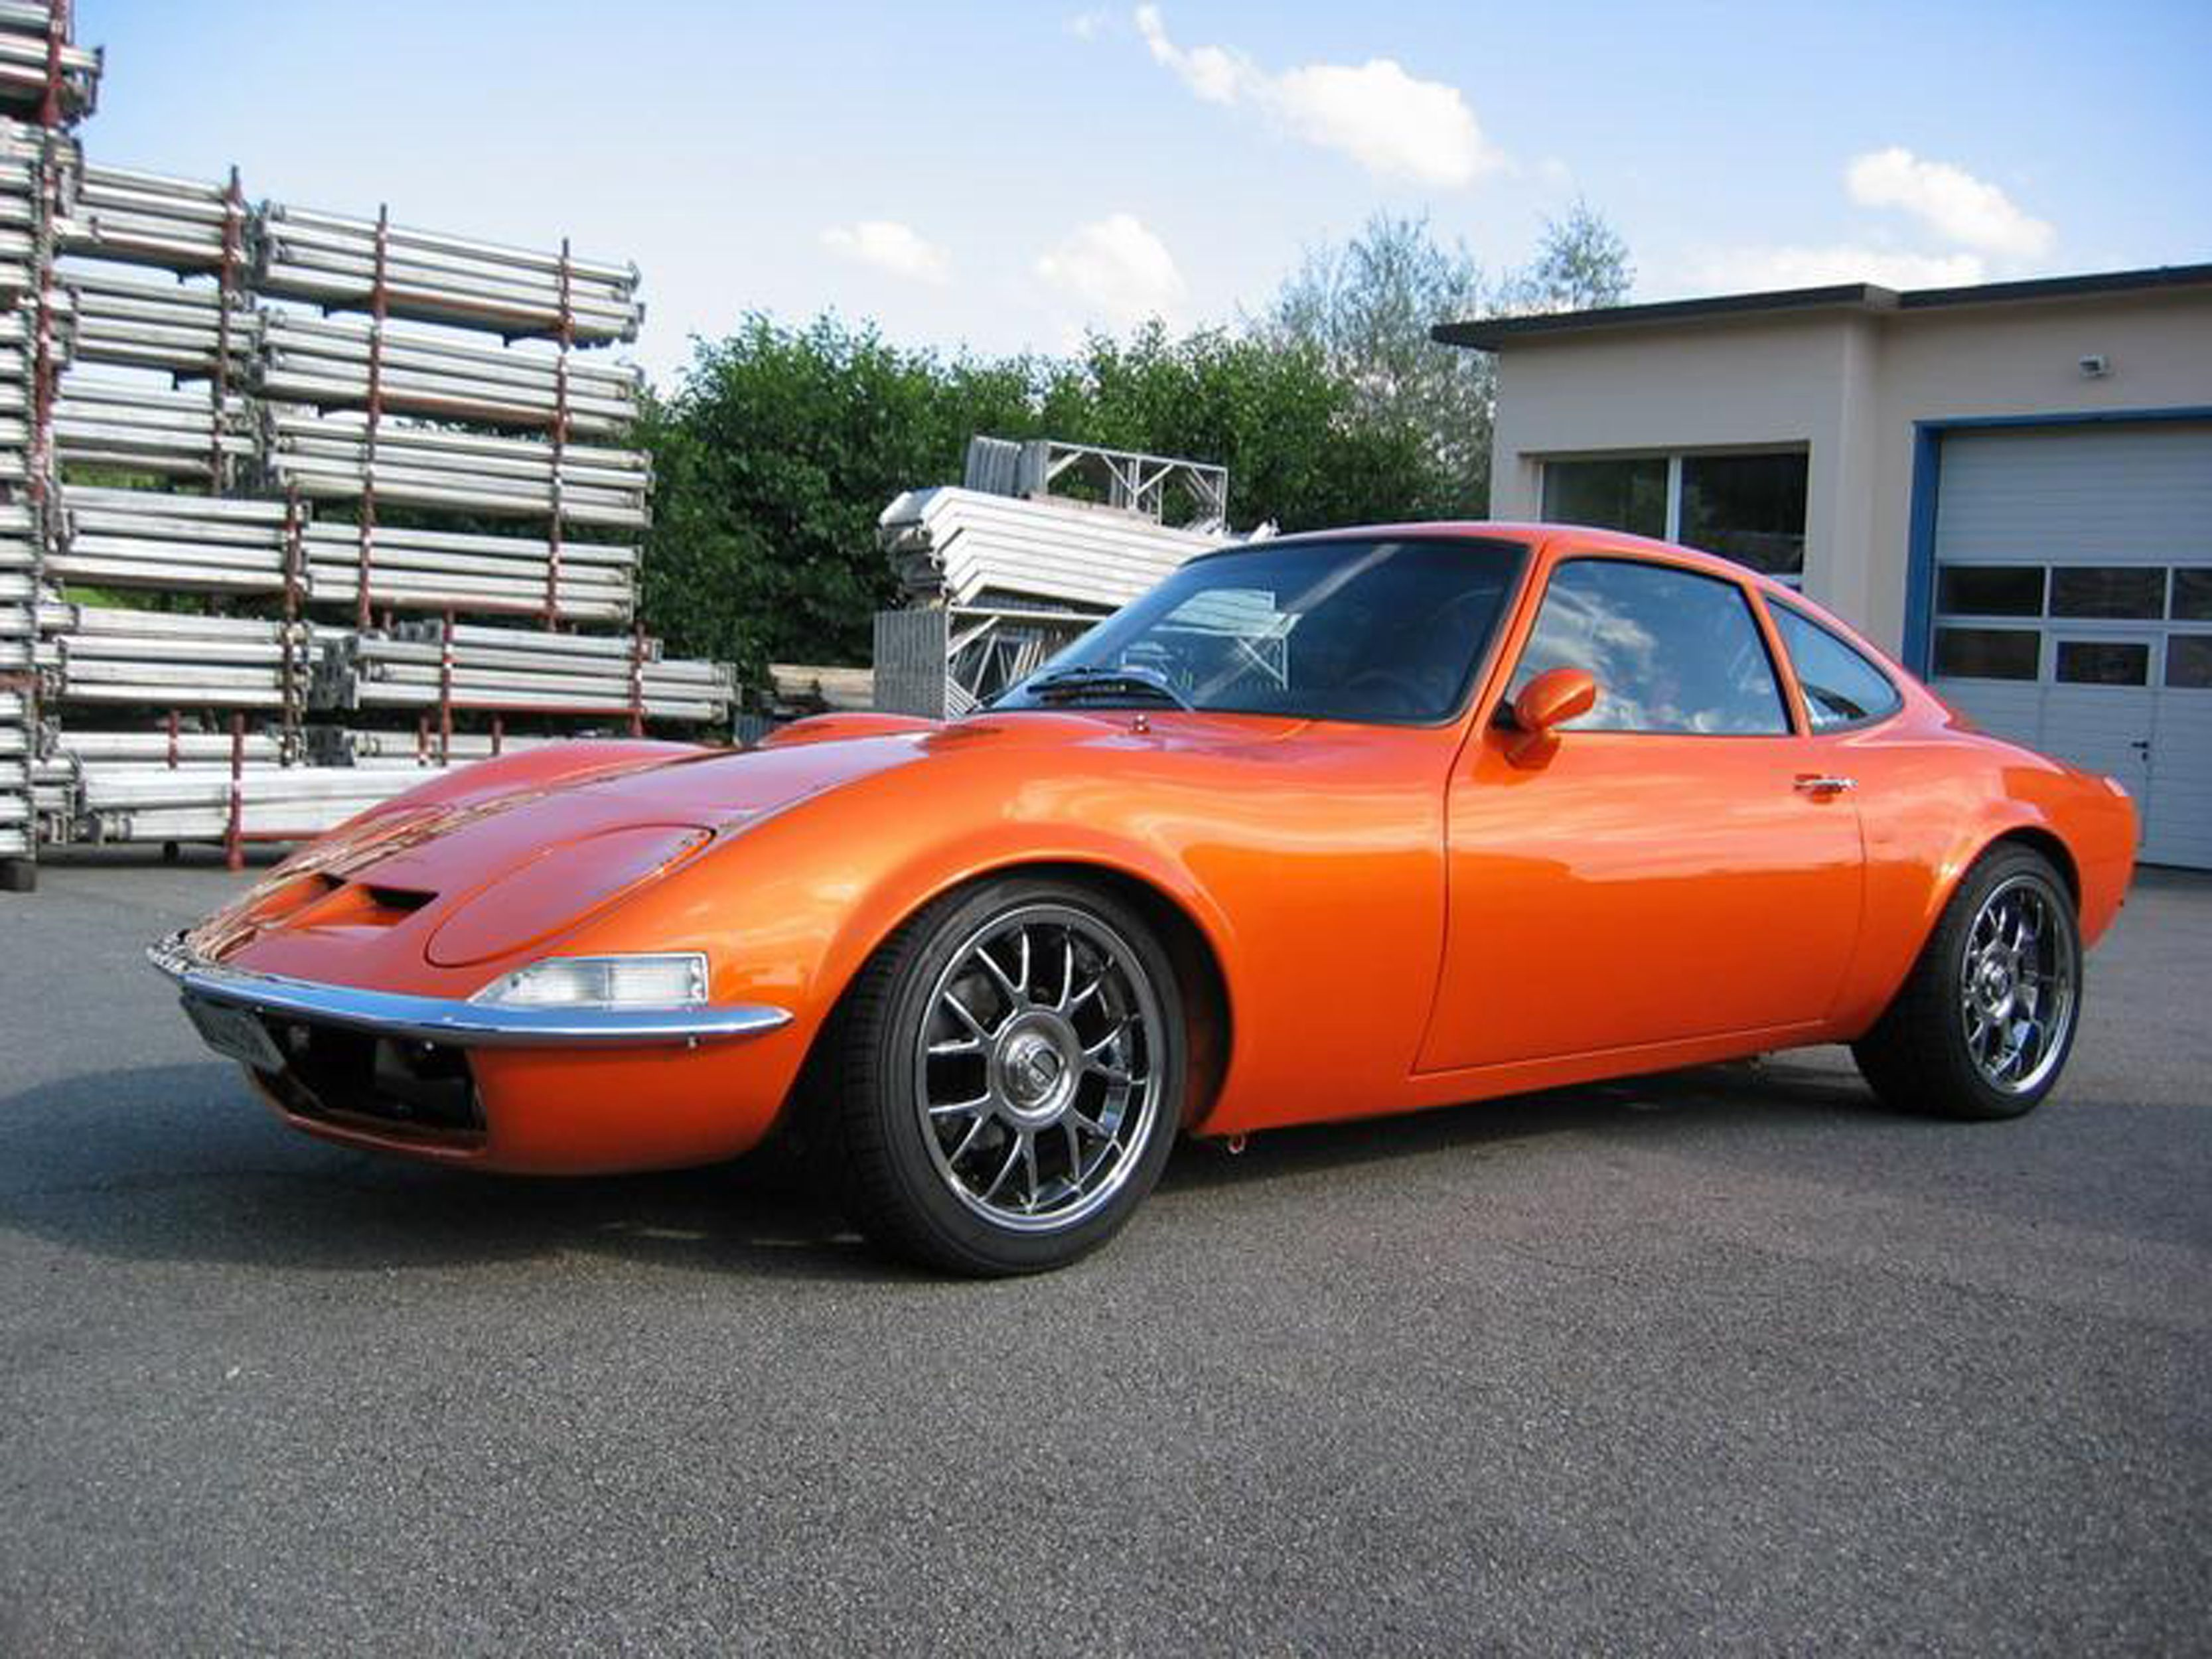 pingl par johann van dike sur opel gt 1900 pinterest. Black Bedroom Furniture Sets. Home Design Ideas